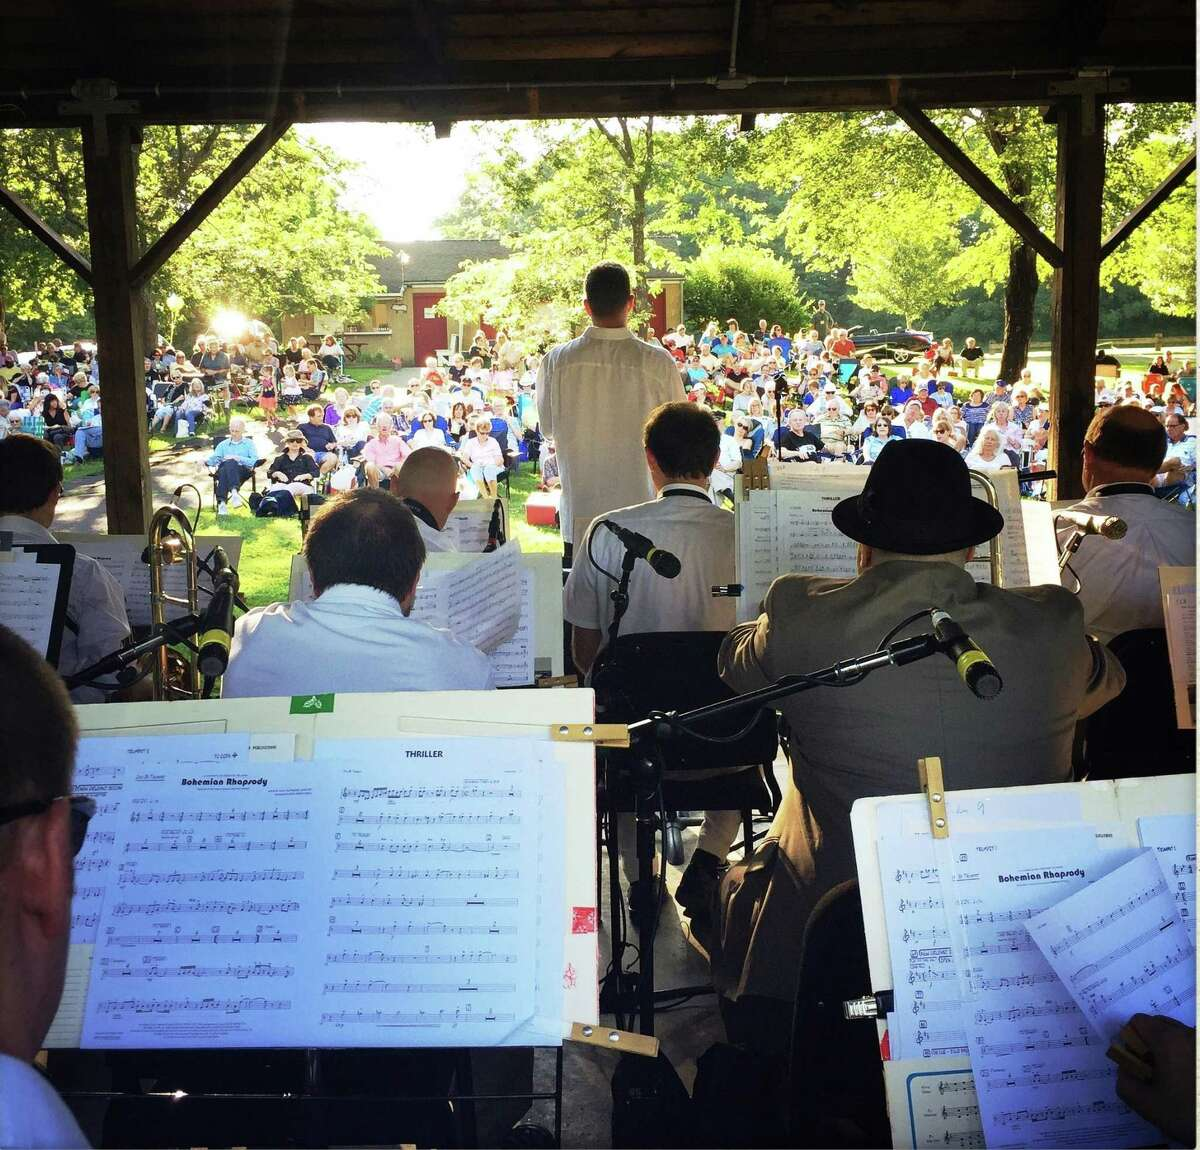 """PICNIC & POPS: The Waterbury Symphony Orchestra presents its 29th annual Summer Pops Concert in Woodbury's Hollow Park July 15 at 6 p.m. with the title """"Disney Classics."""" Leif Bjaland leads the WSO with guest vocalist Ellie Fishman. Visitors may pack a blanket, picnic basket and beverage. Tickets start at $15 per person, $20 day of event. Children admitted for free with adult. VIP tent seating available for $50 per person."""